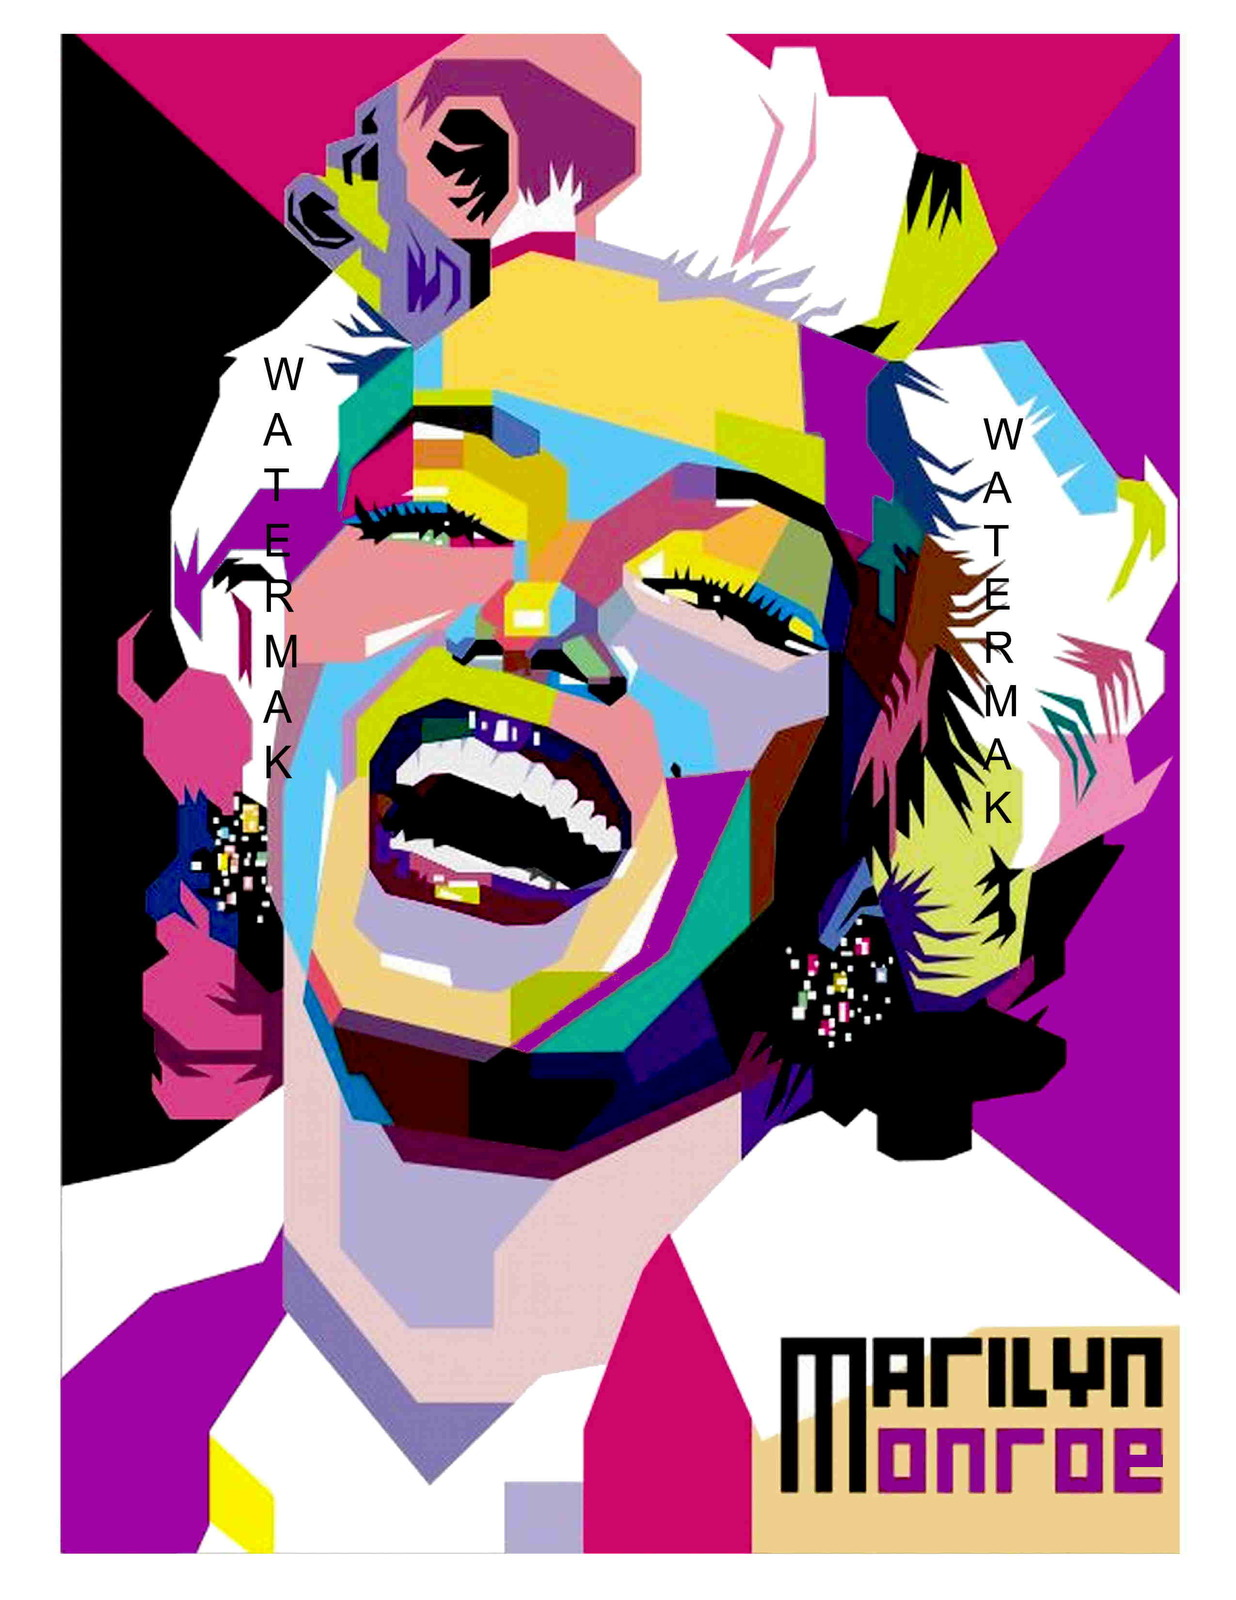 Polly marilyn monroe art deco